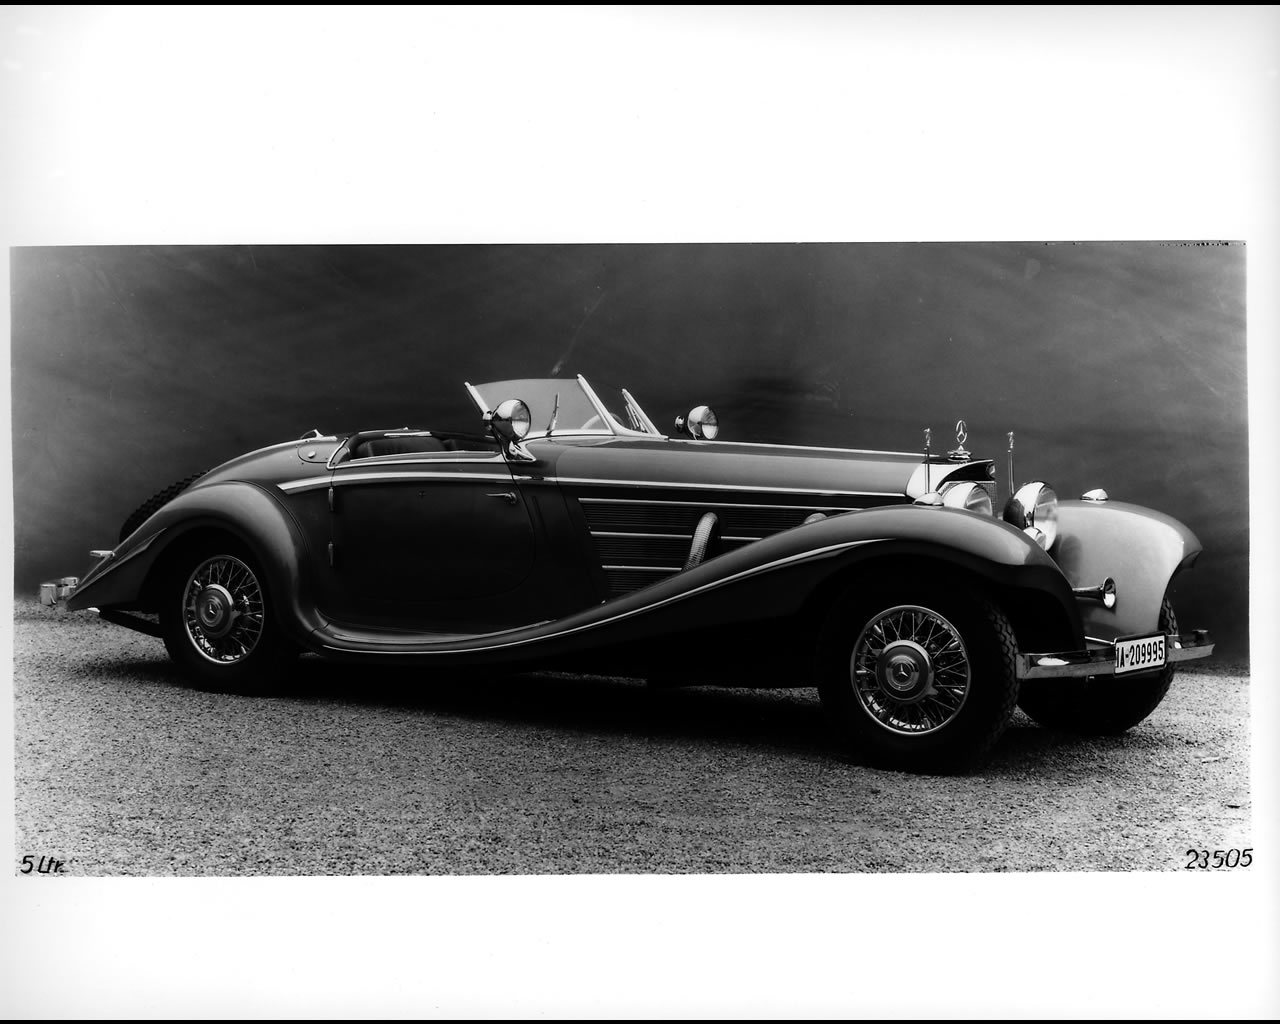 Mercedes Benz 540K Spezial Roadster 1939